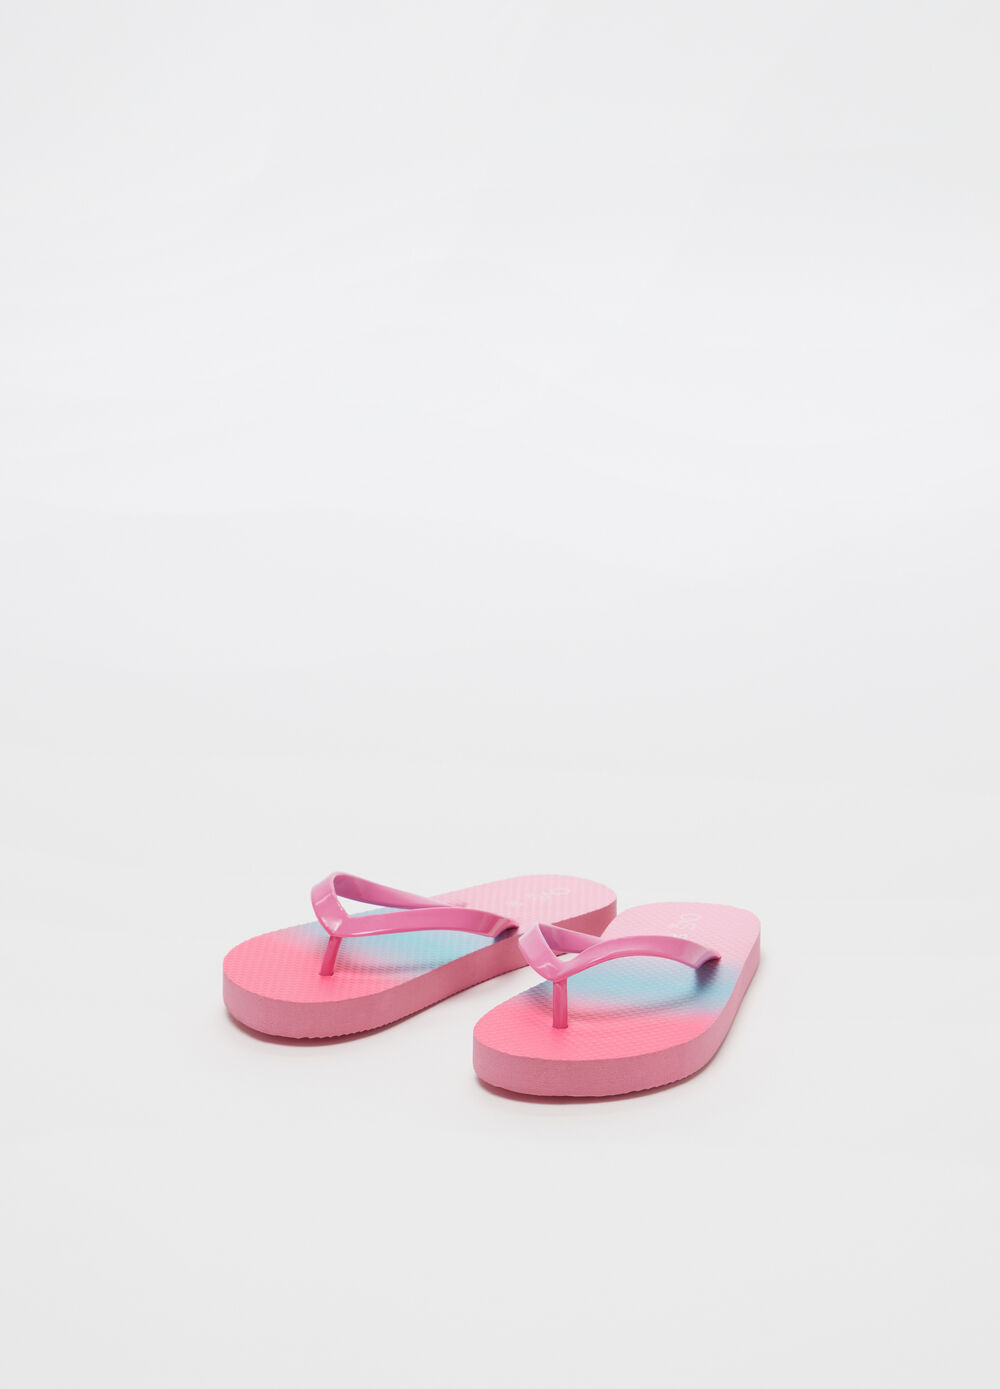 Chanclas bicolor efecto degradado